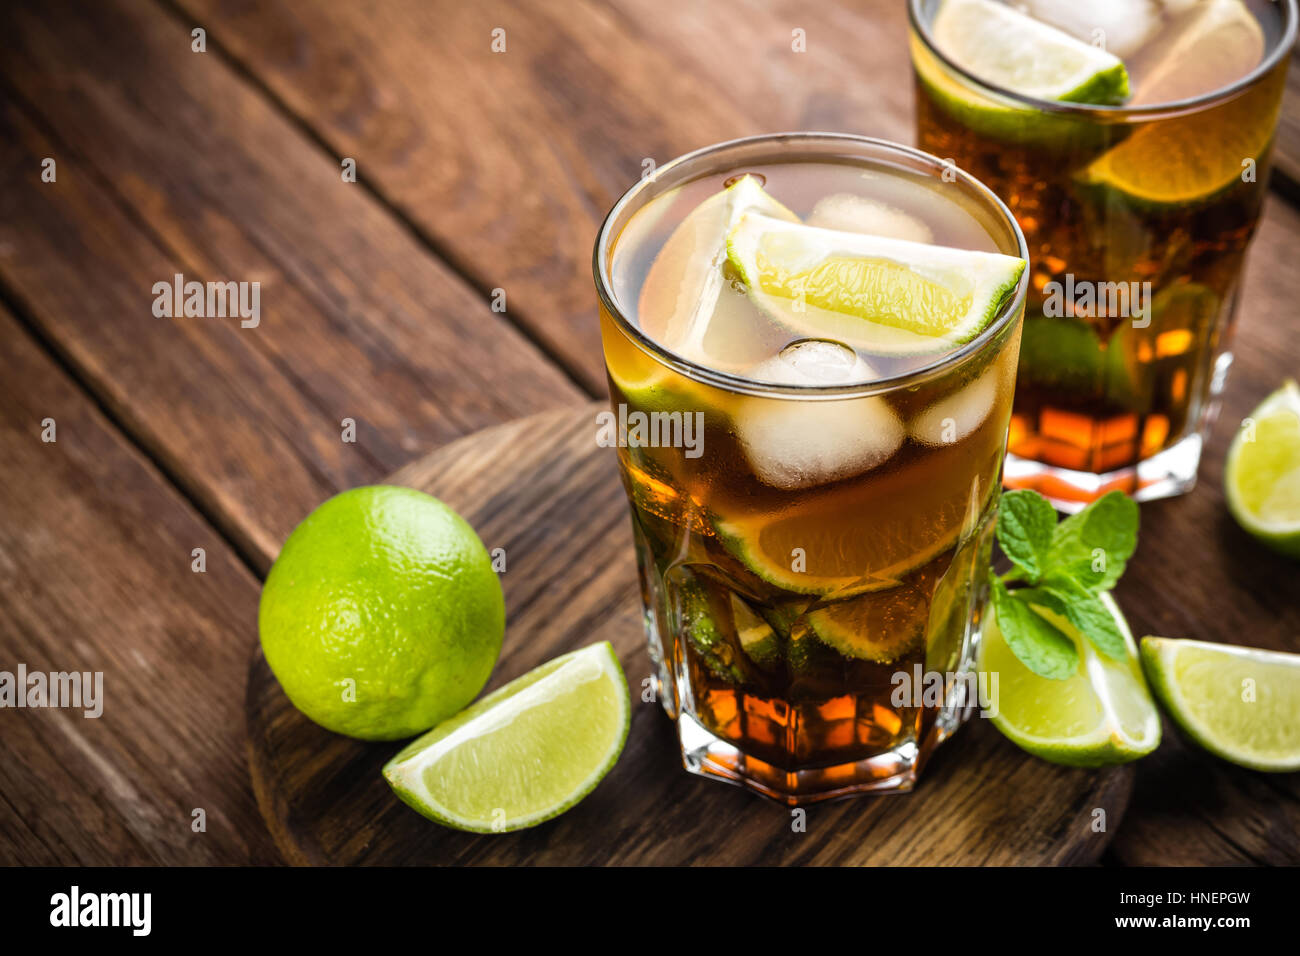 Cuba Libre Cocktail Cola Cocktail Stock Photos And Cola Cocktail Stock Images